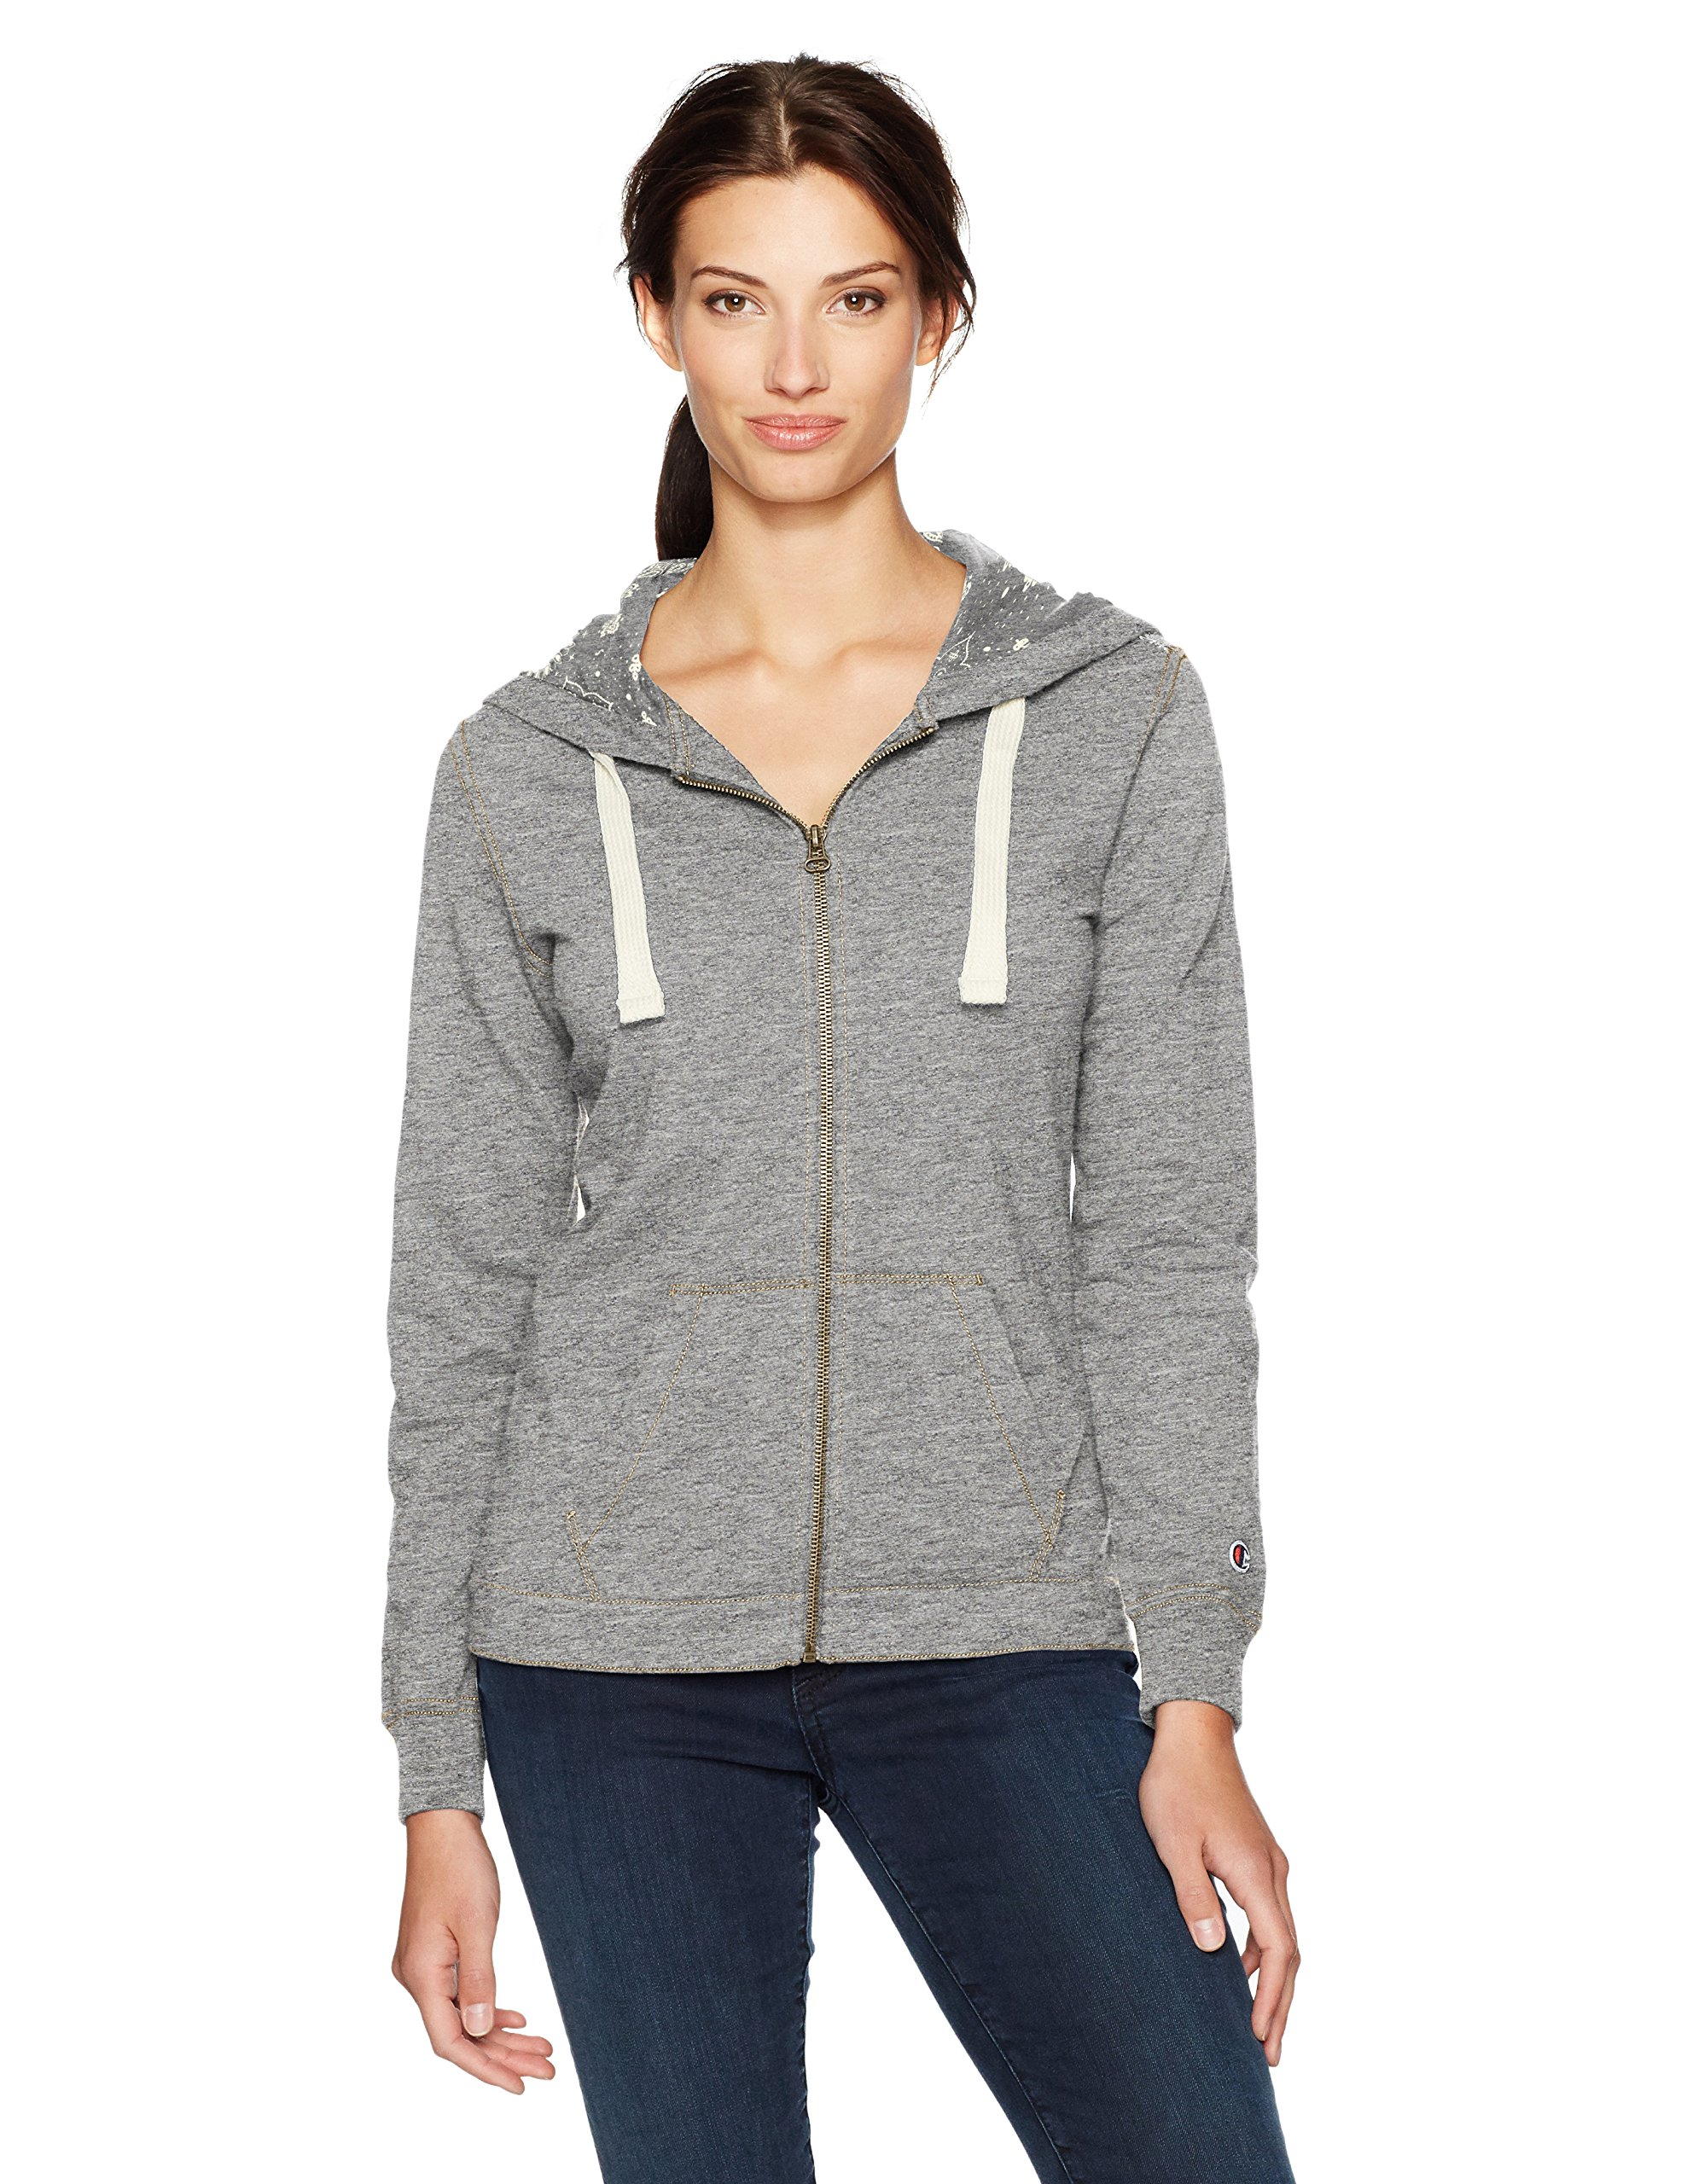 Champion Women's French Terry Full Zip Hoodie (Edition), Light Steel, L by Champion